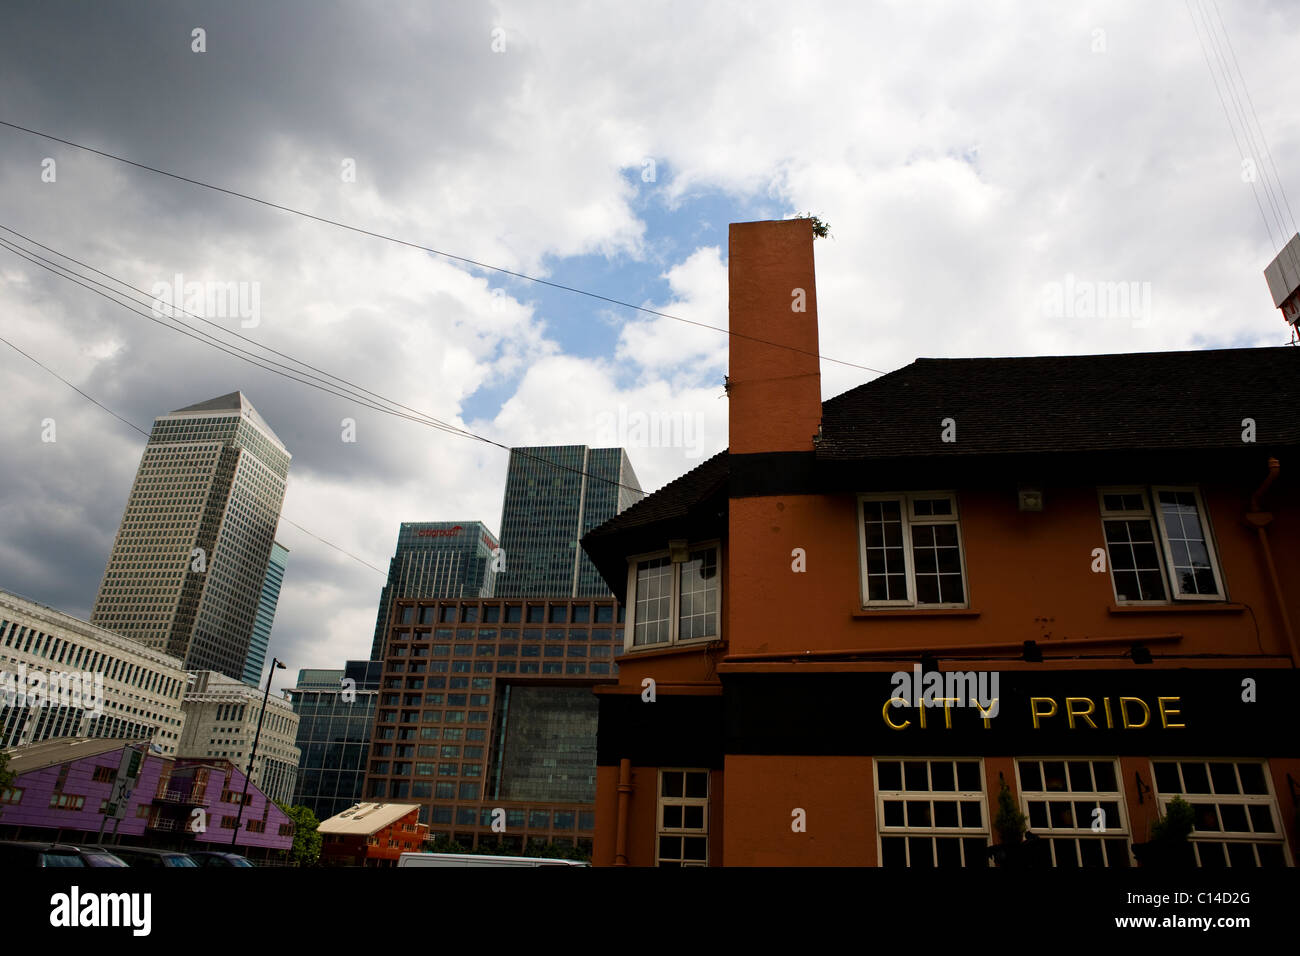 City Pride pub in Canary Wharf, Isle of Dogs, London - Stock Image